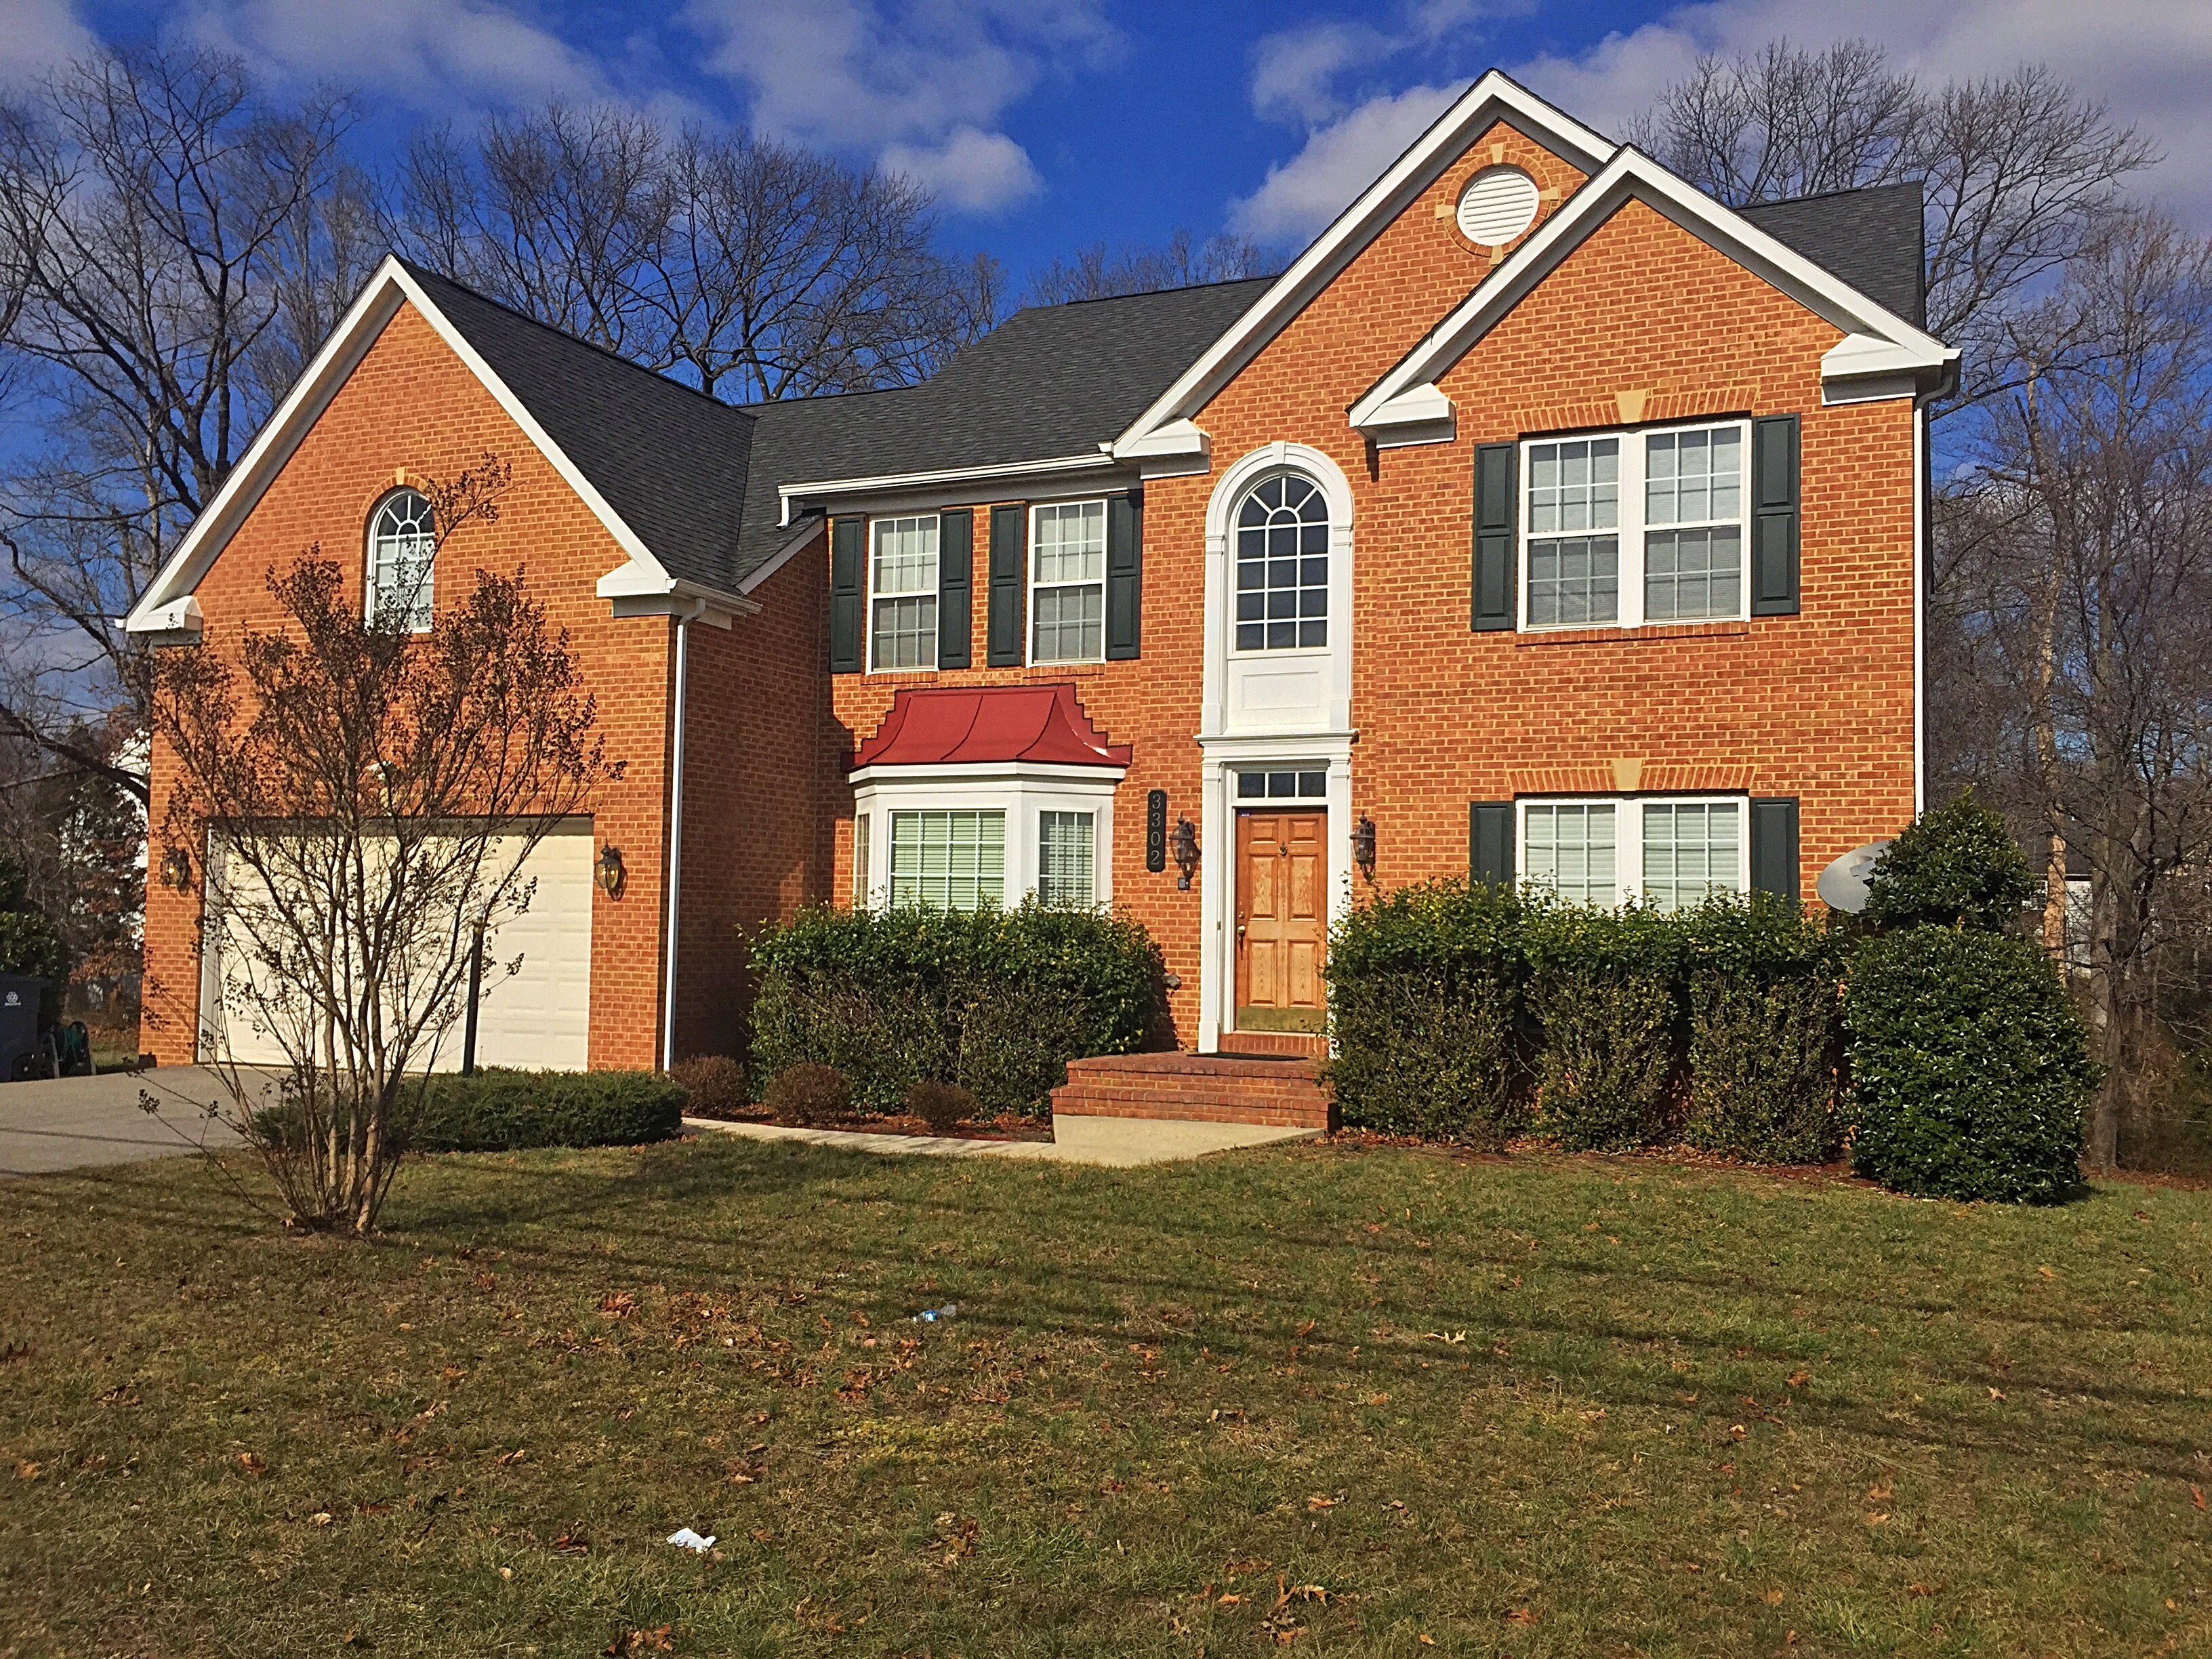 3302 Steed Road, Fort Washington, MD home for sale